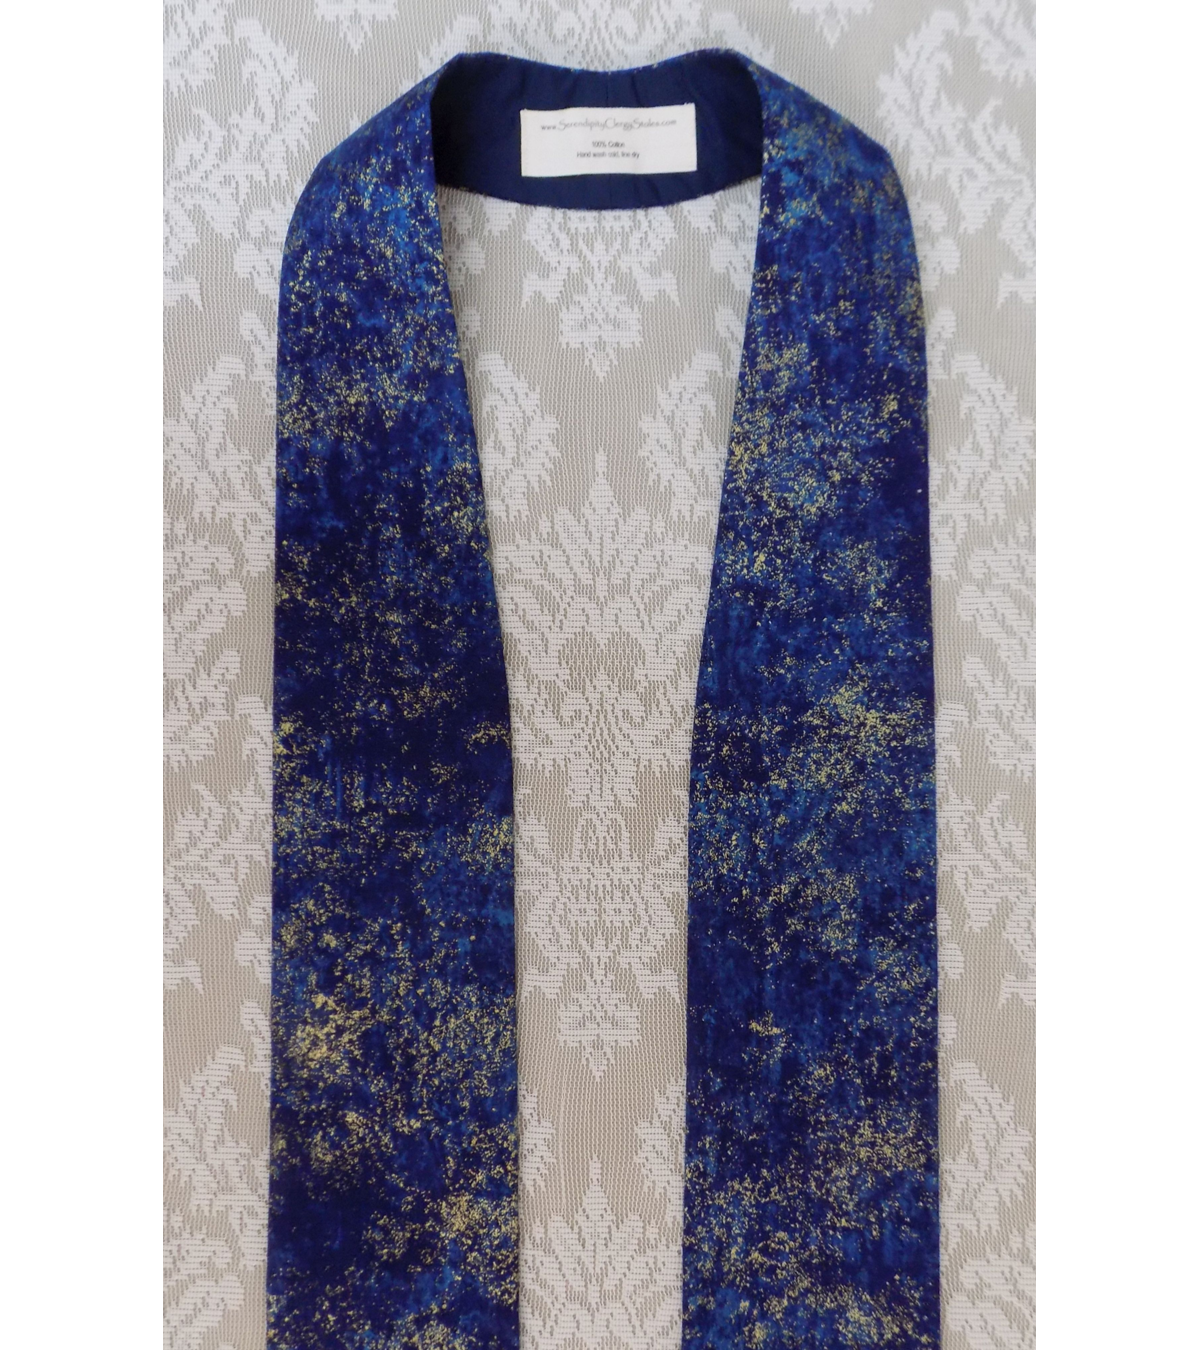 READY TO SHIP! Heavenly Hosts Sing! Blue Metallic Cotton Print Clergy Stole for Advent